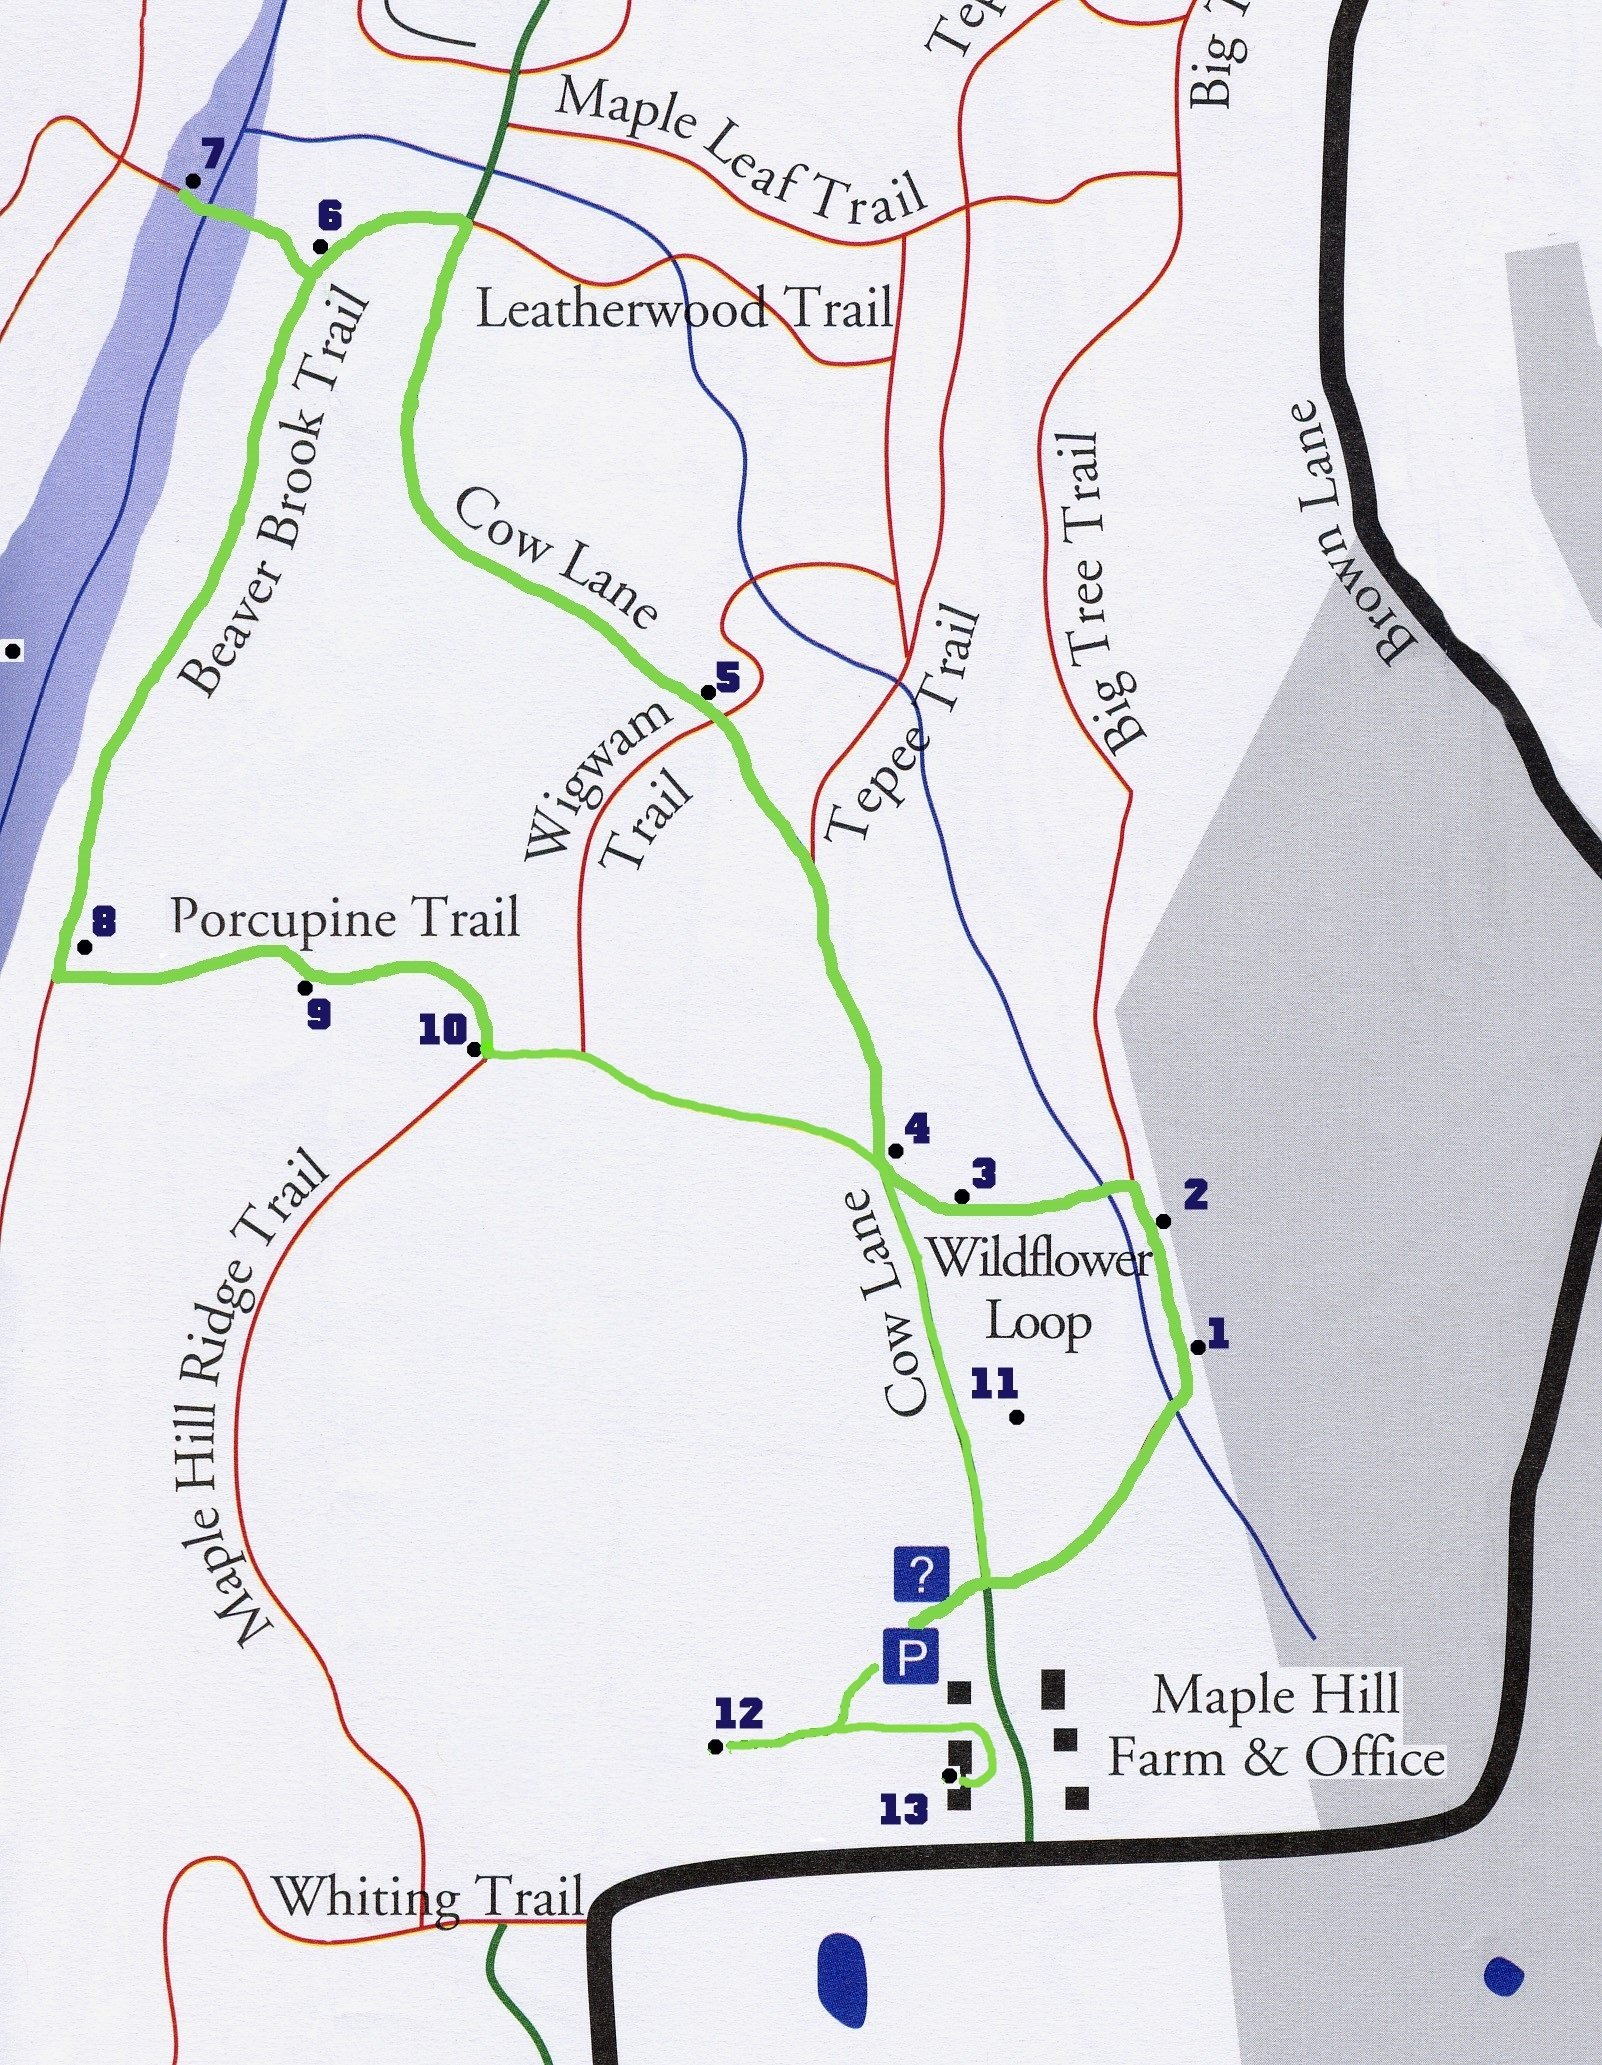 Trail Maps and Guides - Beaver Brook ociation on hiking map, bear brook trail race, dogtown gloucester ma bike trail map,